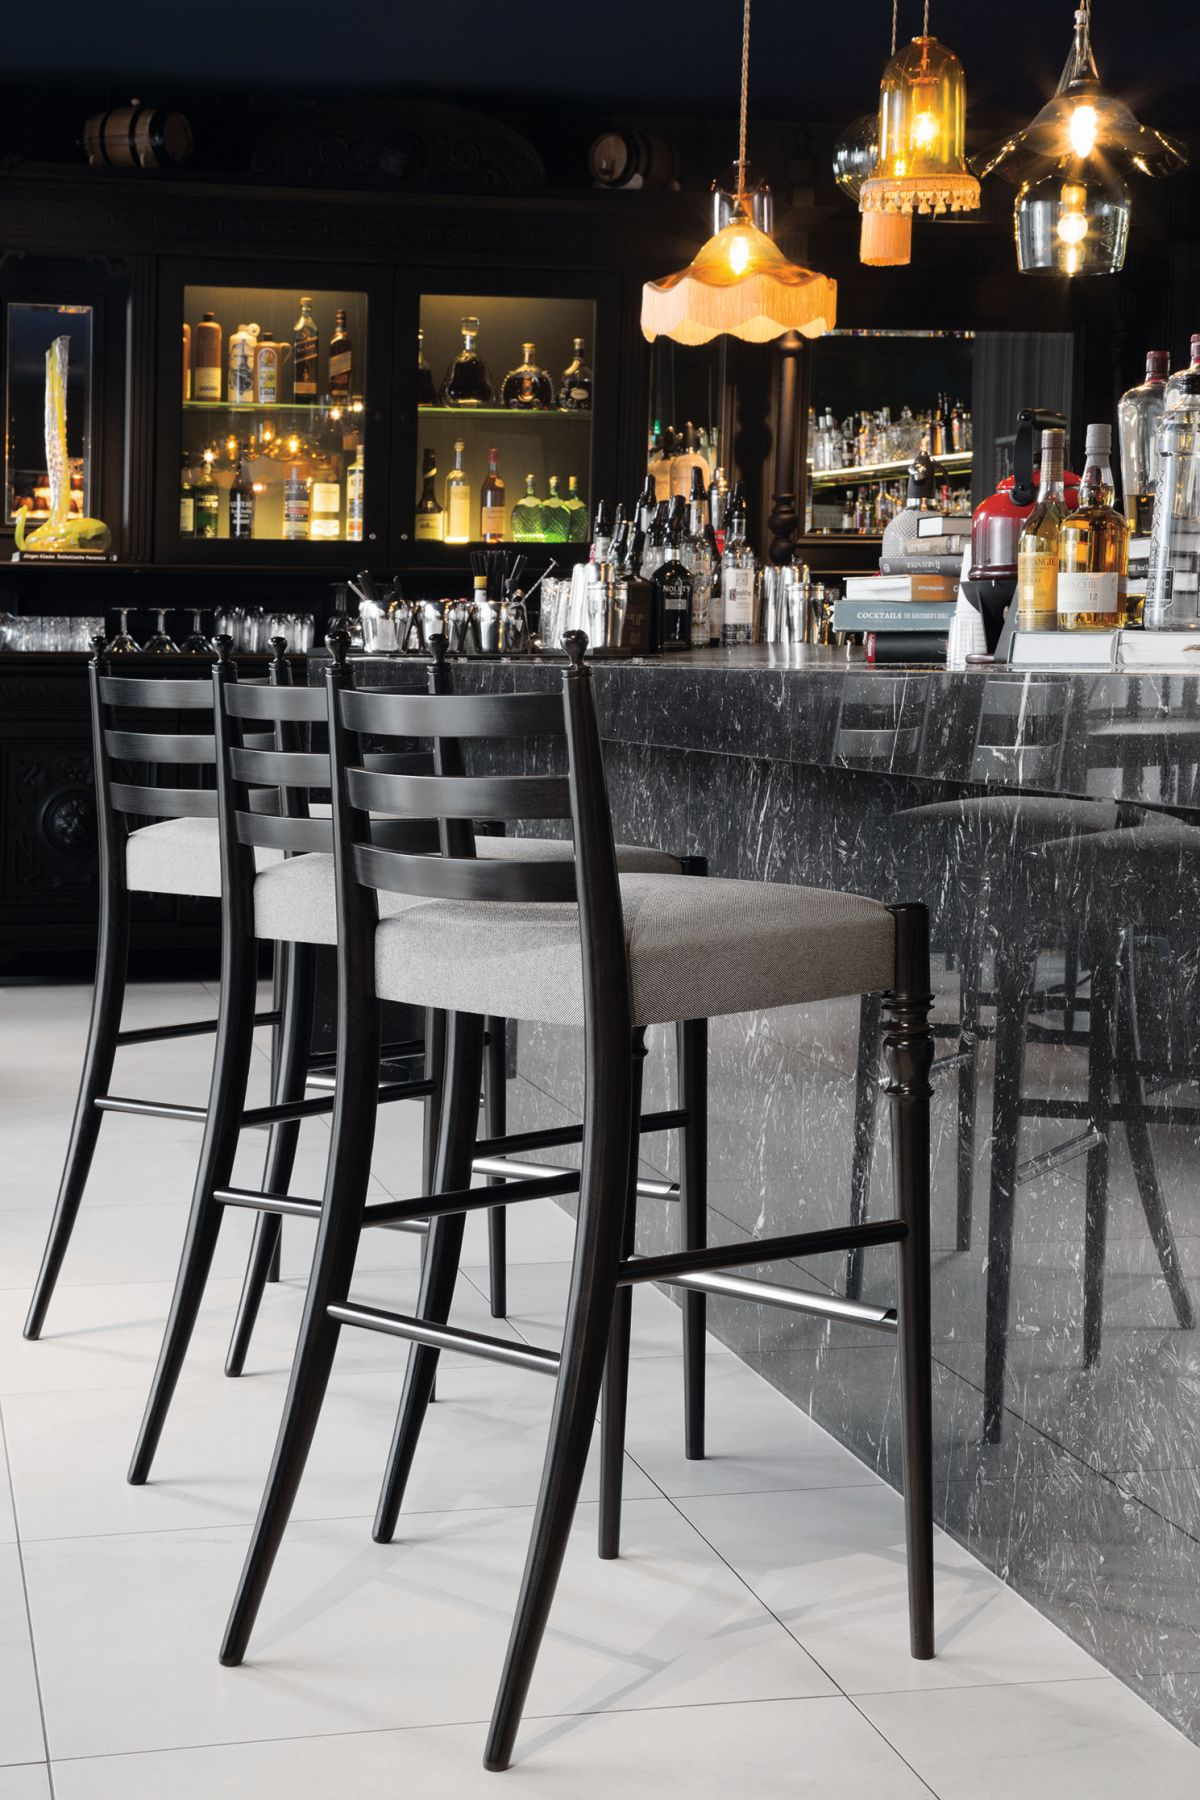 Stupendous Black And White Bar Stools How To Choose And Use Them Uwap Interior Chair Design Uwaporg